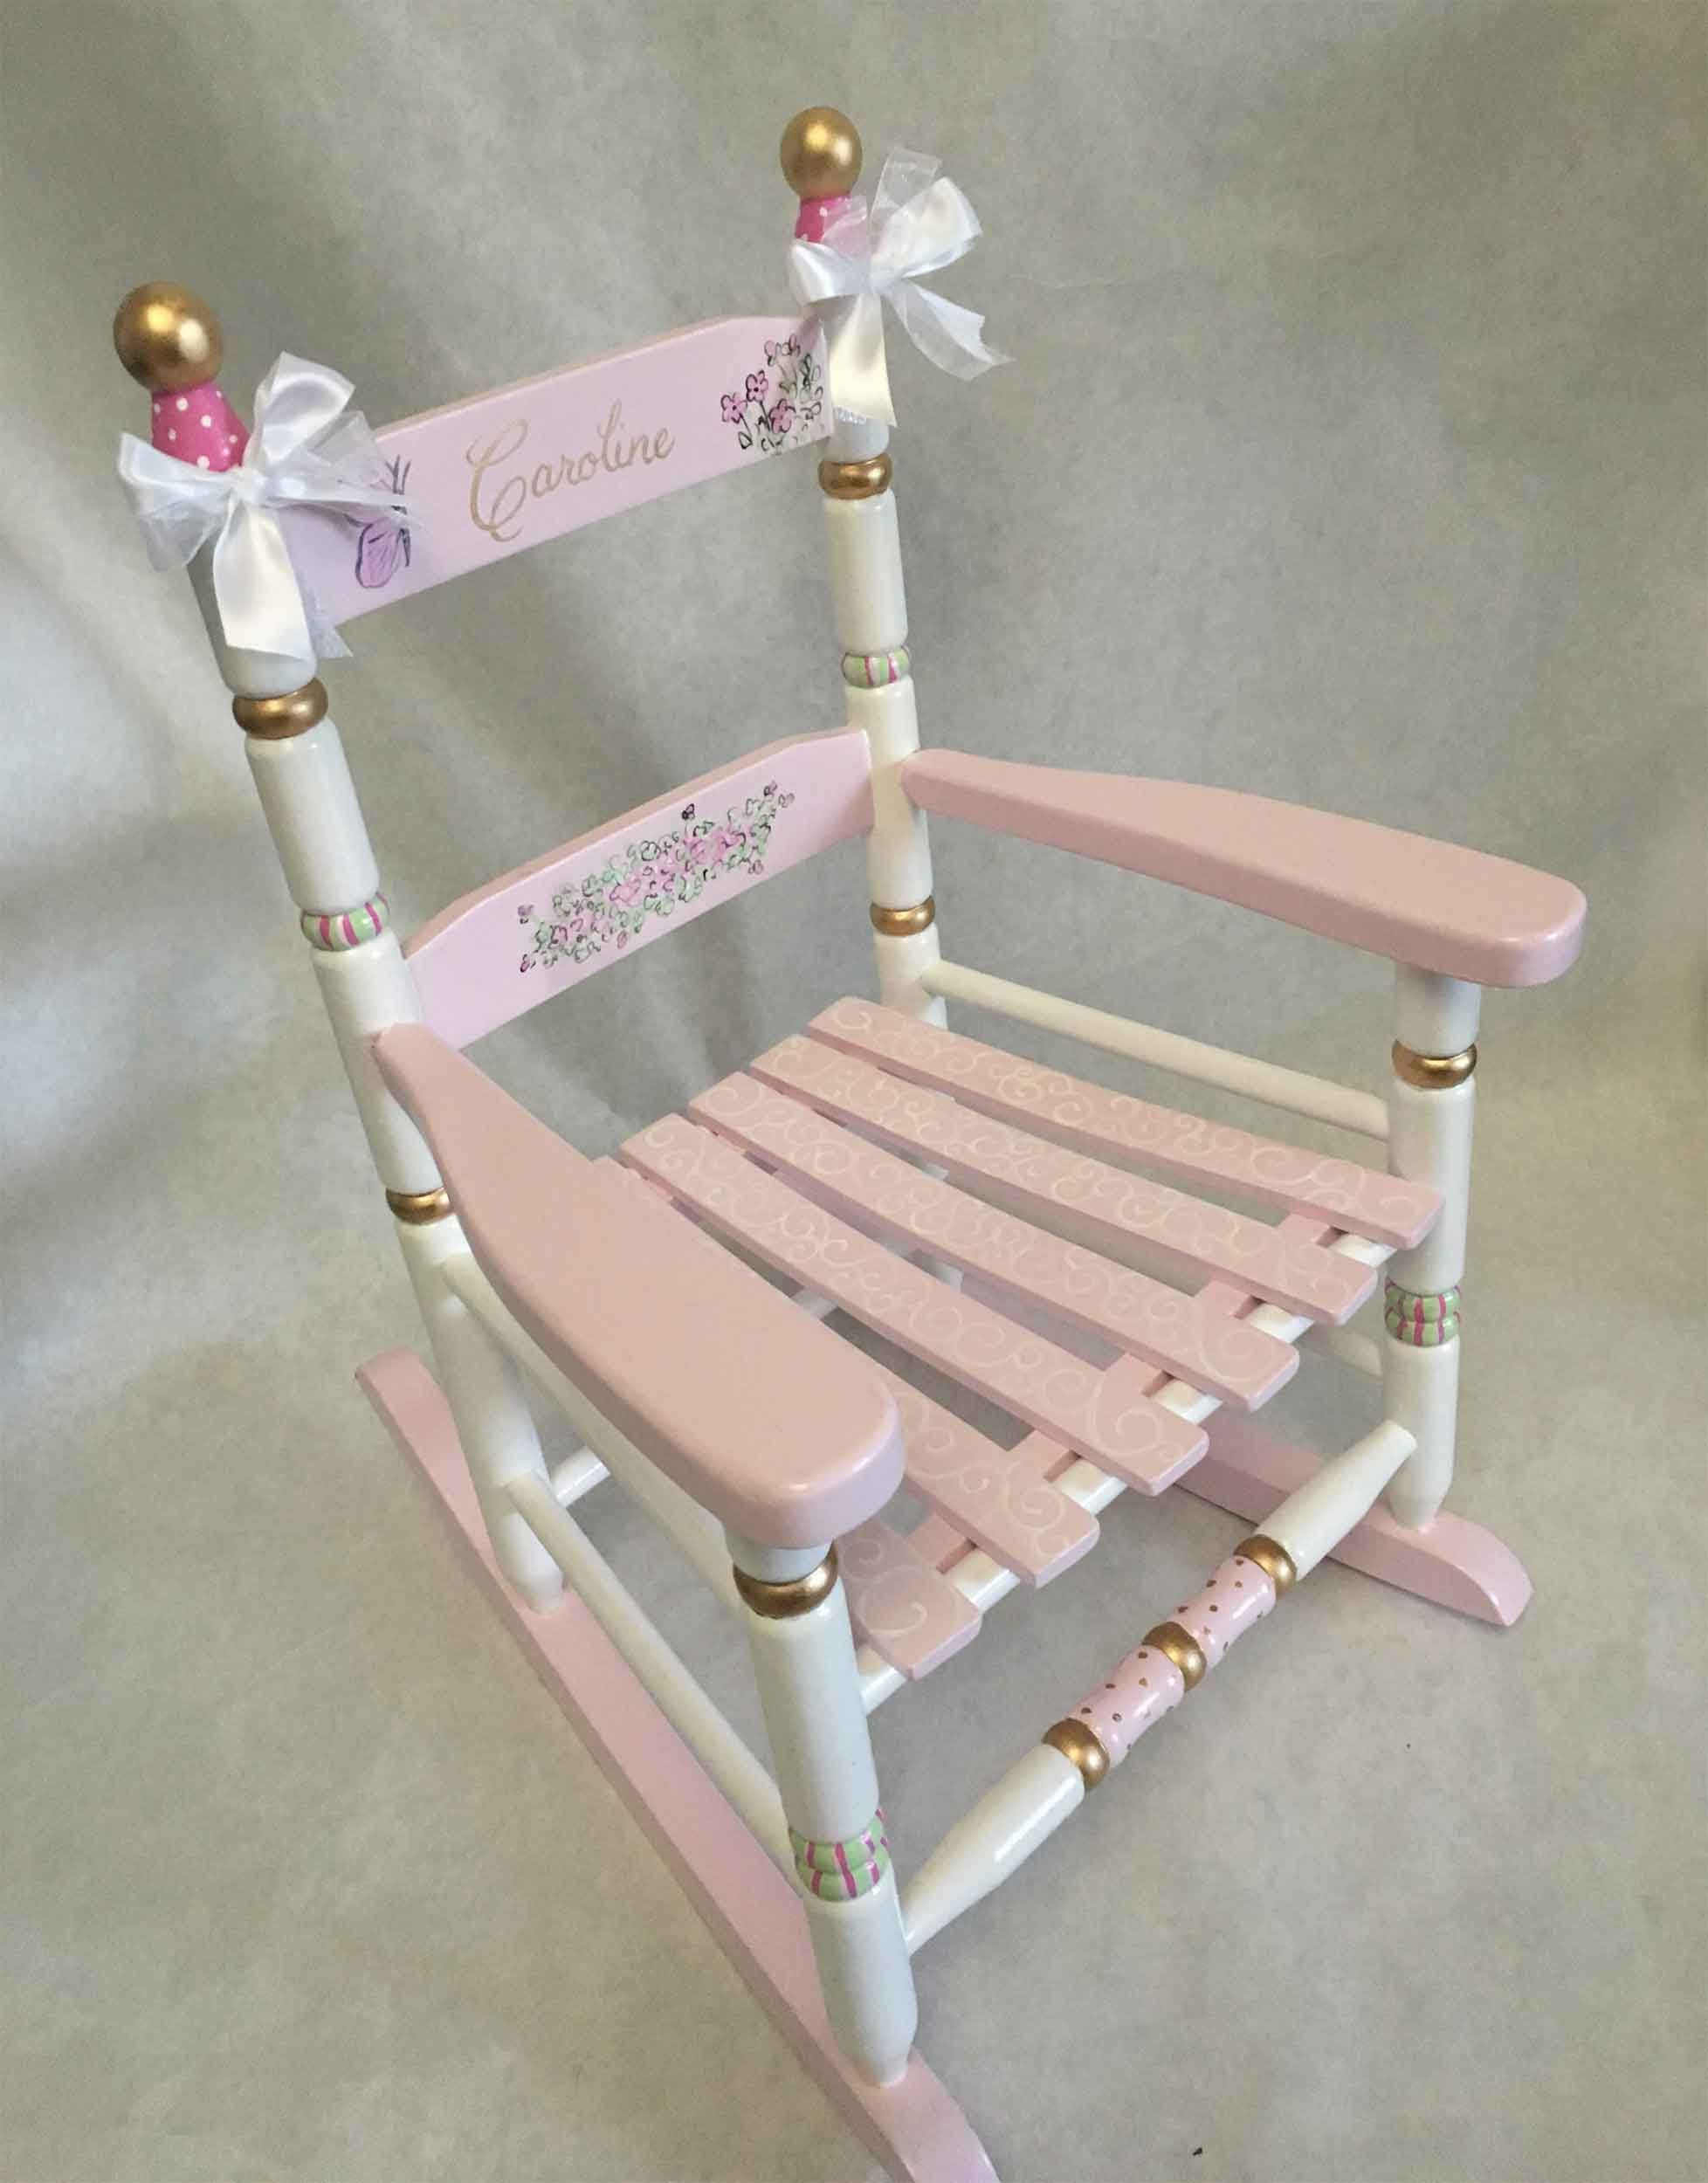 Remarkable Childs Rocking Chair Hand Painted Rocking Chair Painted Short Links Chair Design For Home Short Linksinfo